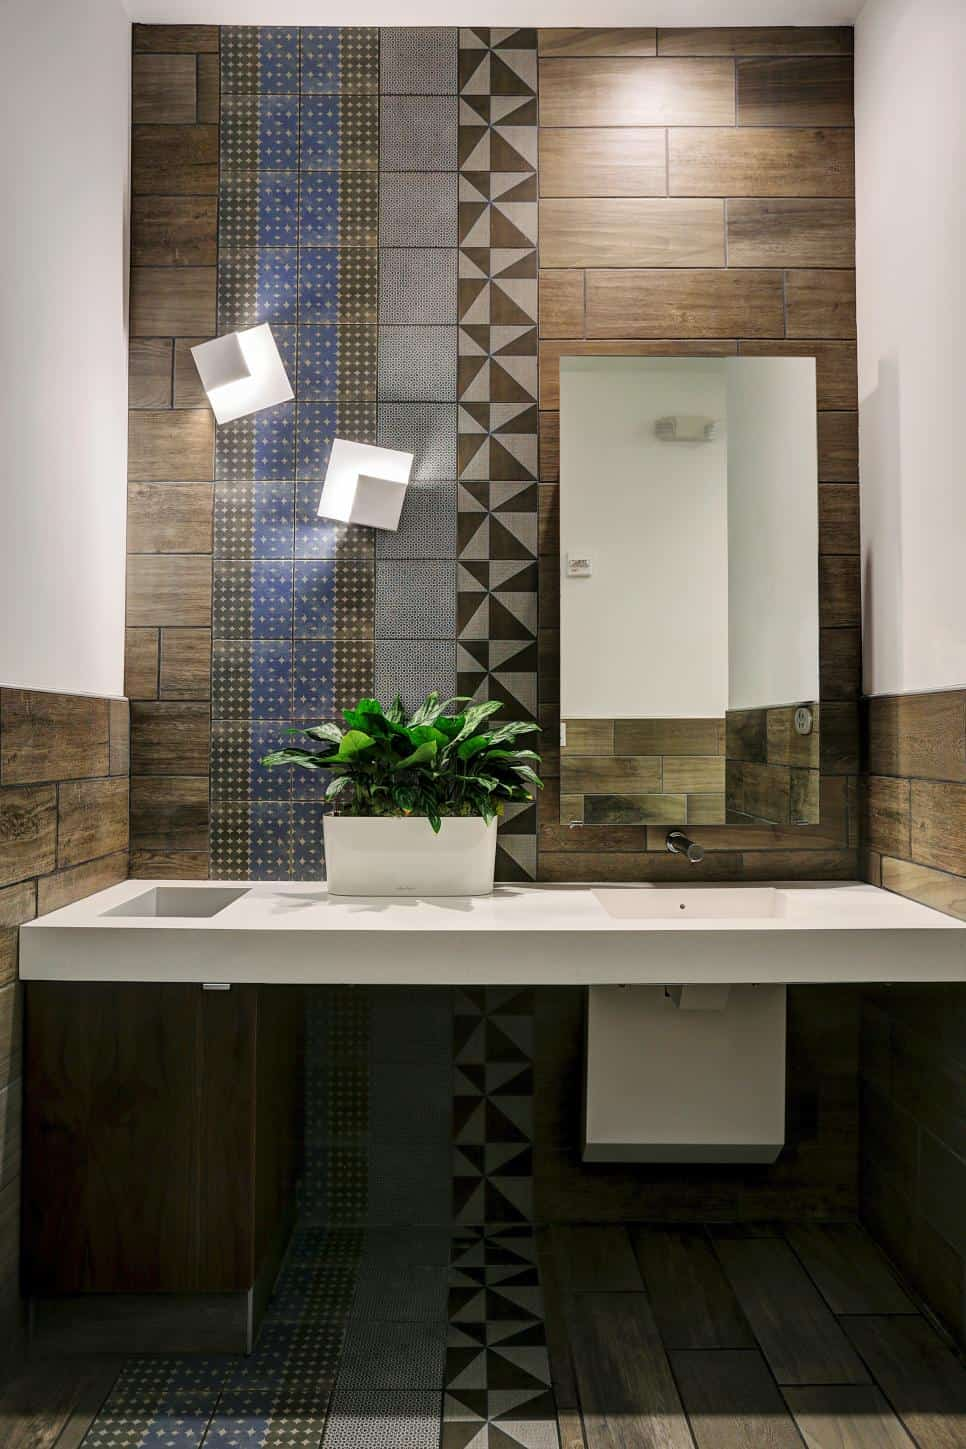 Bathroom accent wall in wood look tiles by Gin Braverman